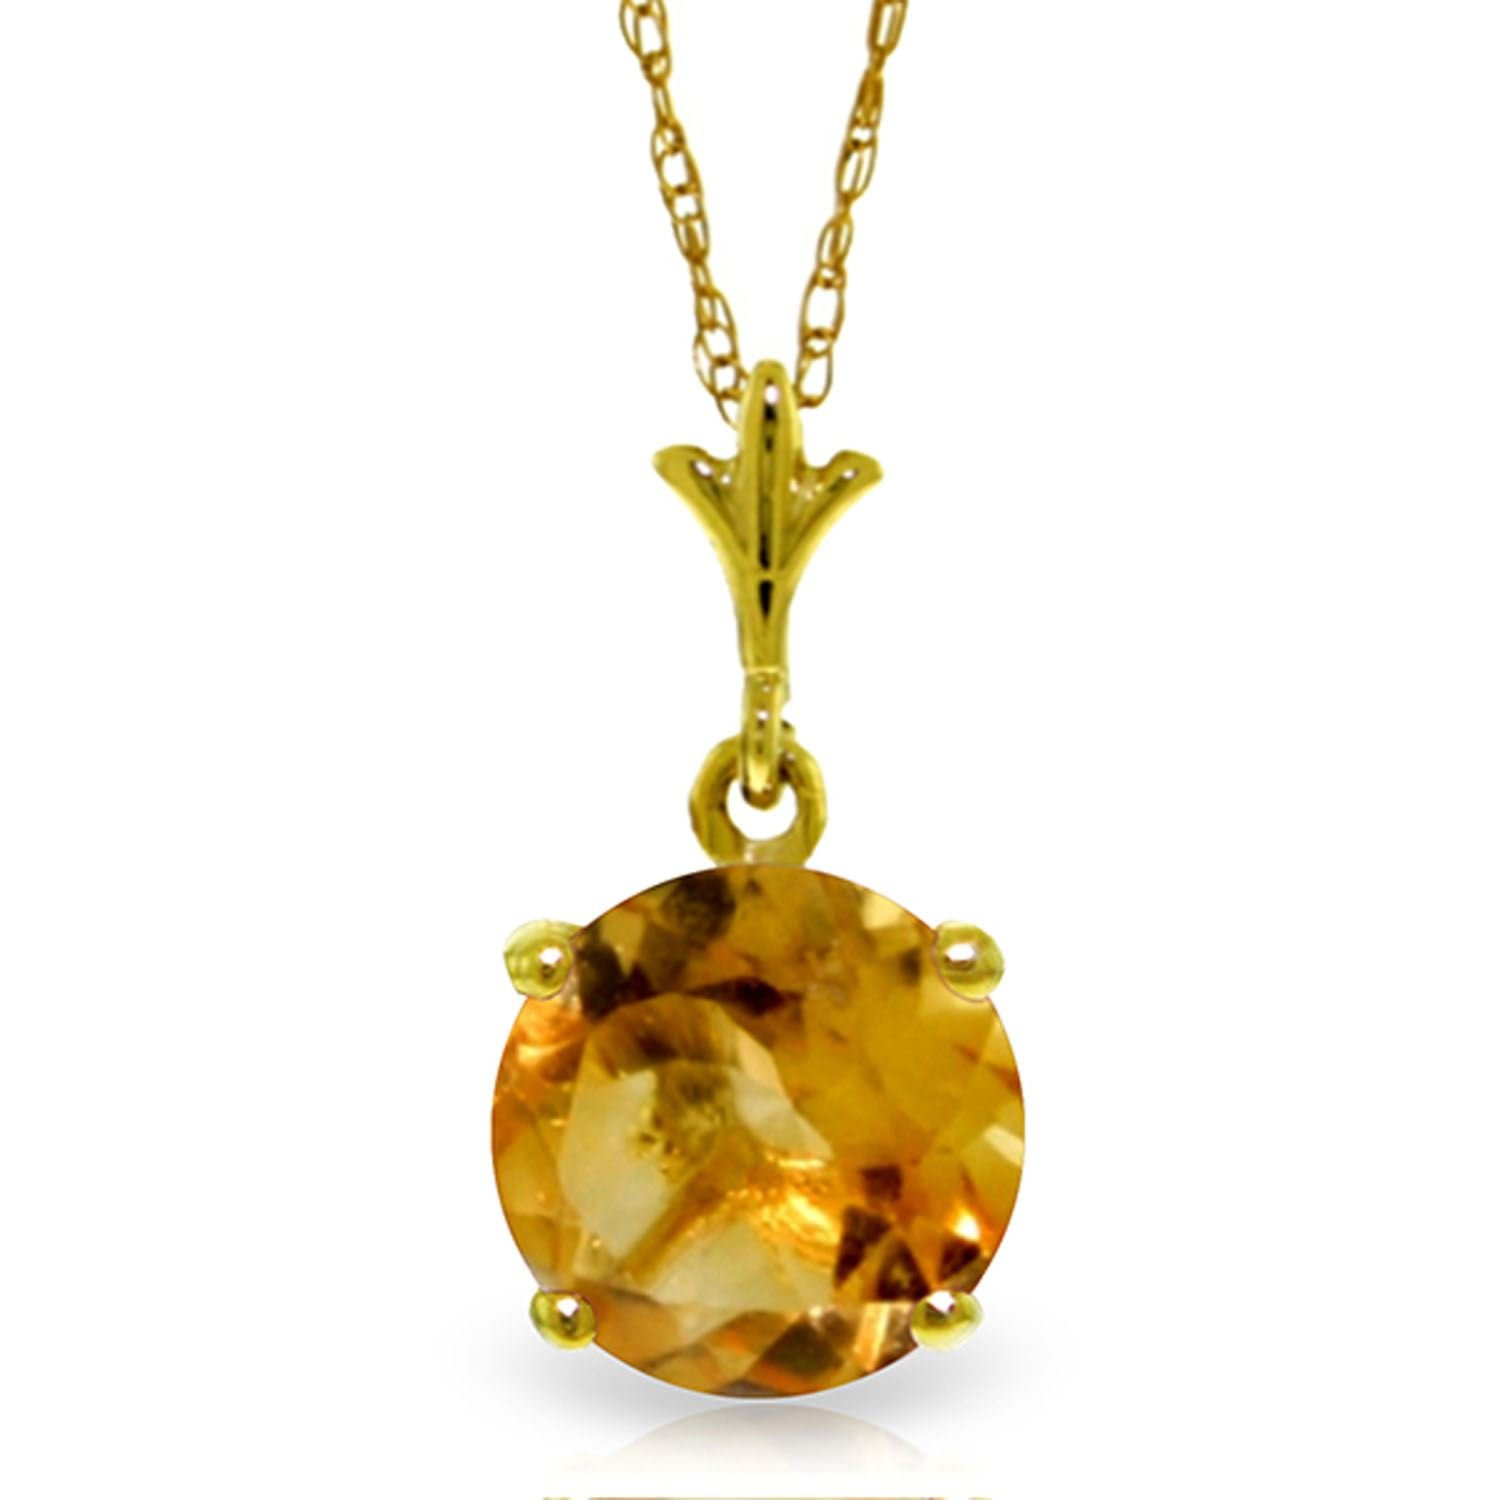 ALARRI 1.15 Carat 14K Solid Gold In Love Citrine Necklace with 18 Inch Chain Length